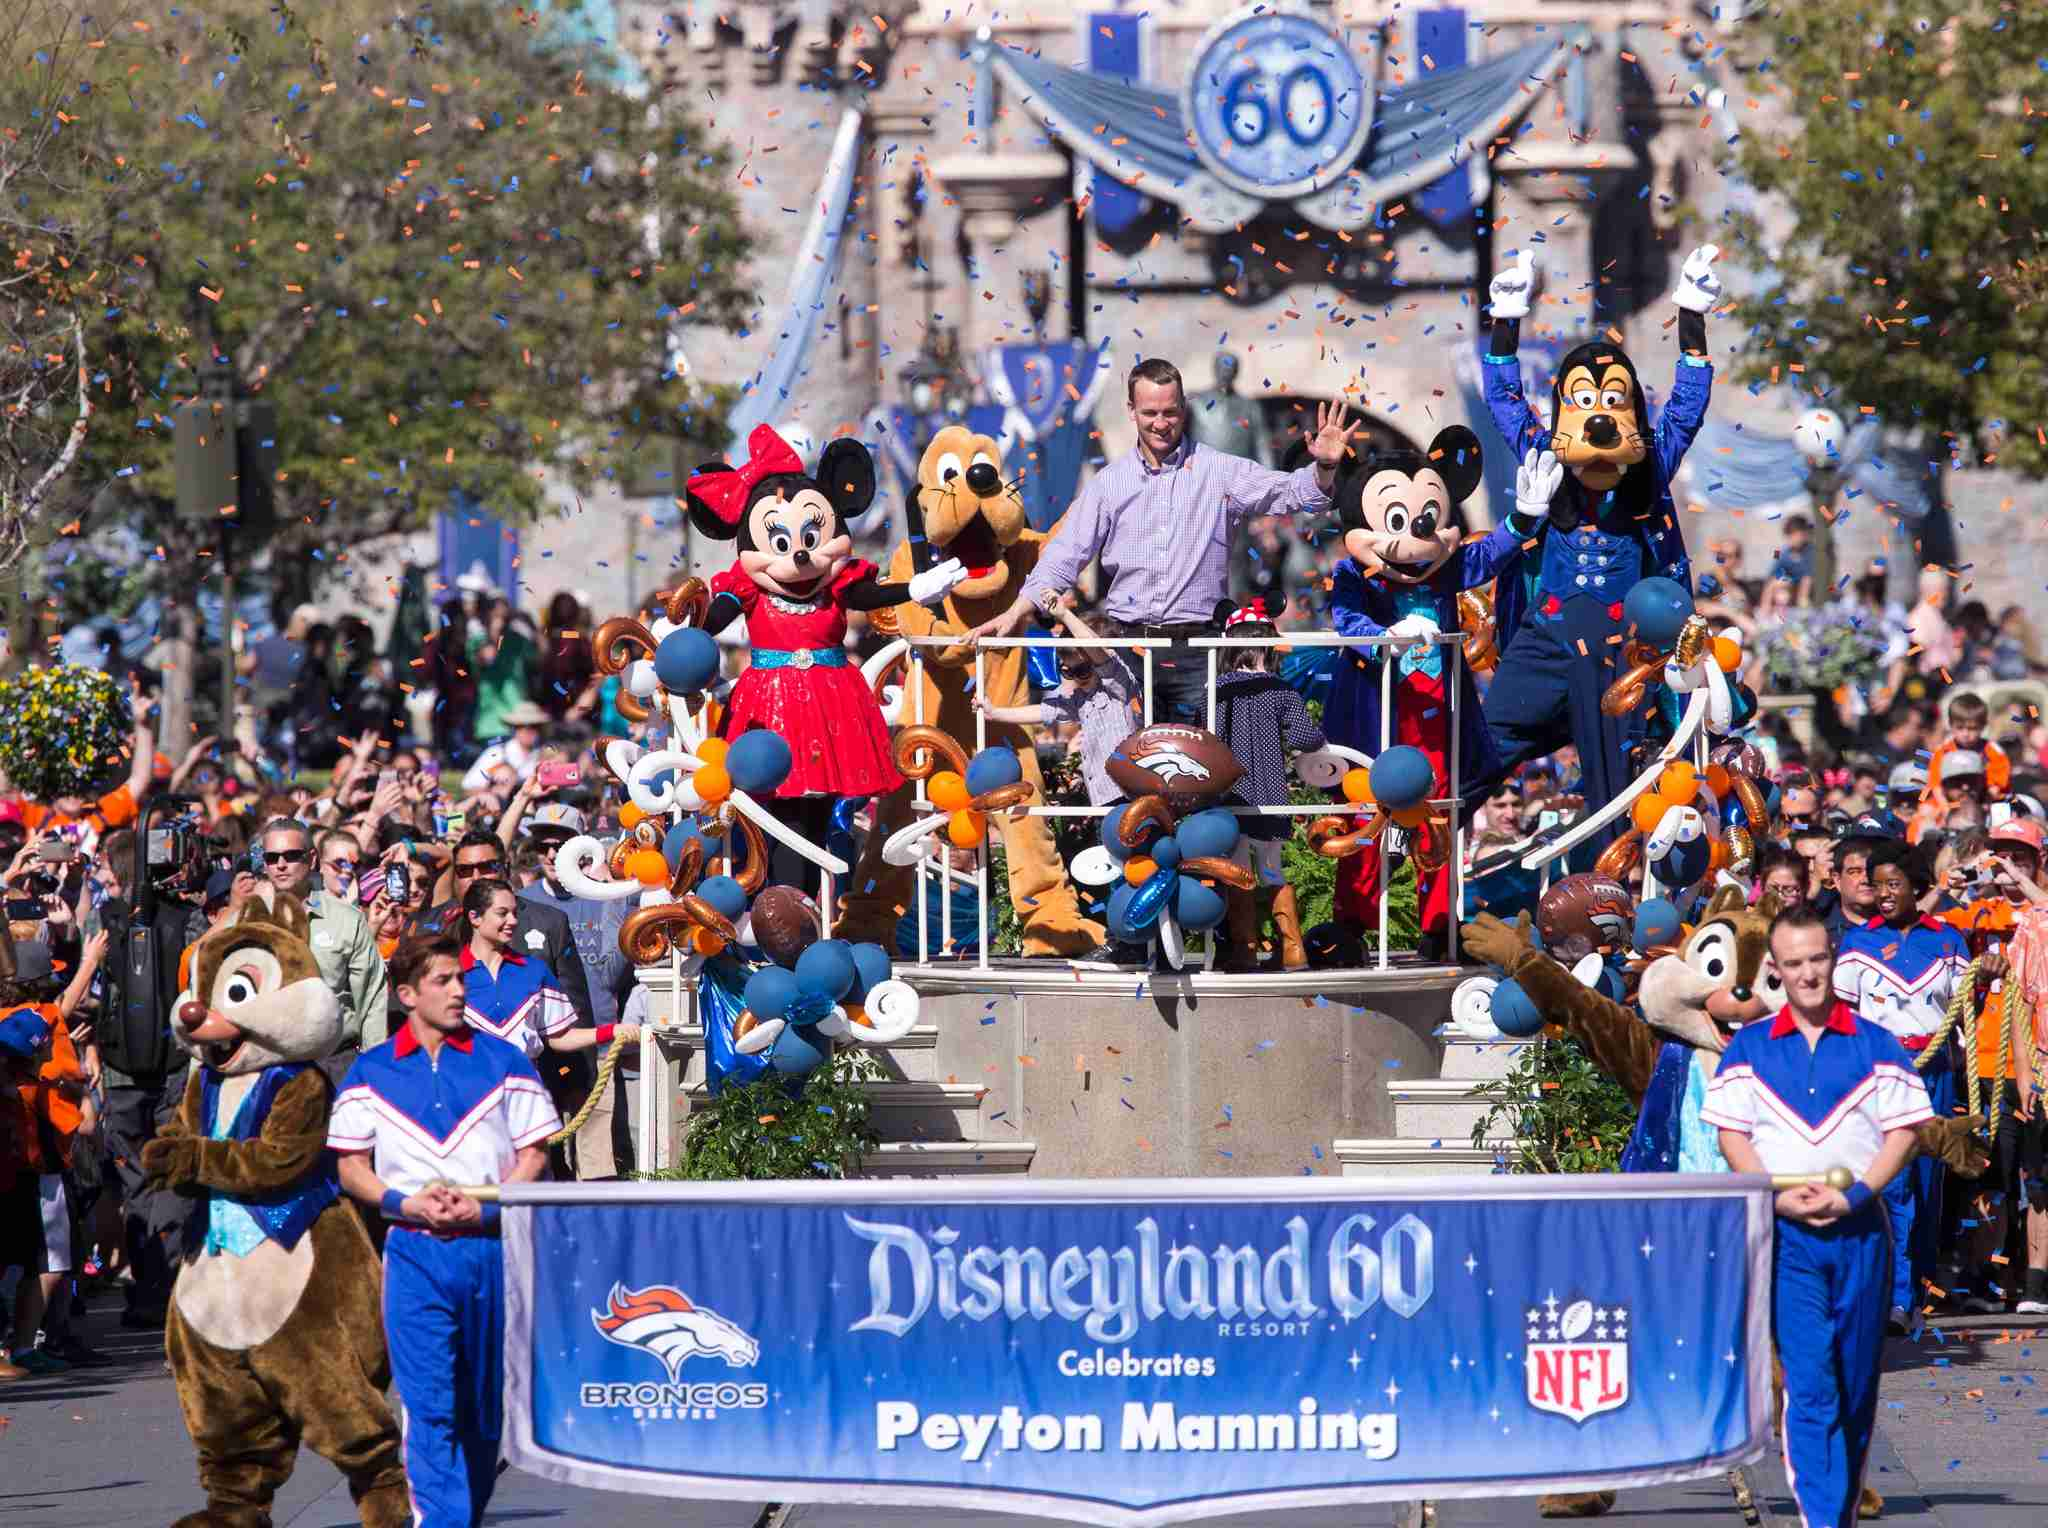 The parade at Disneyland in 2019 (Photo by Paul Hiffmeyer/Disneyland Resort via Getty Images)